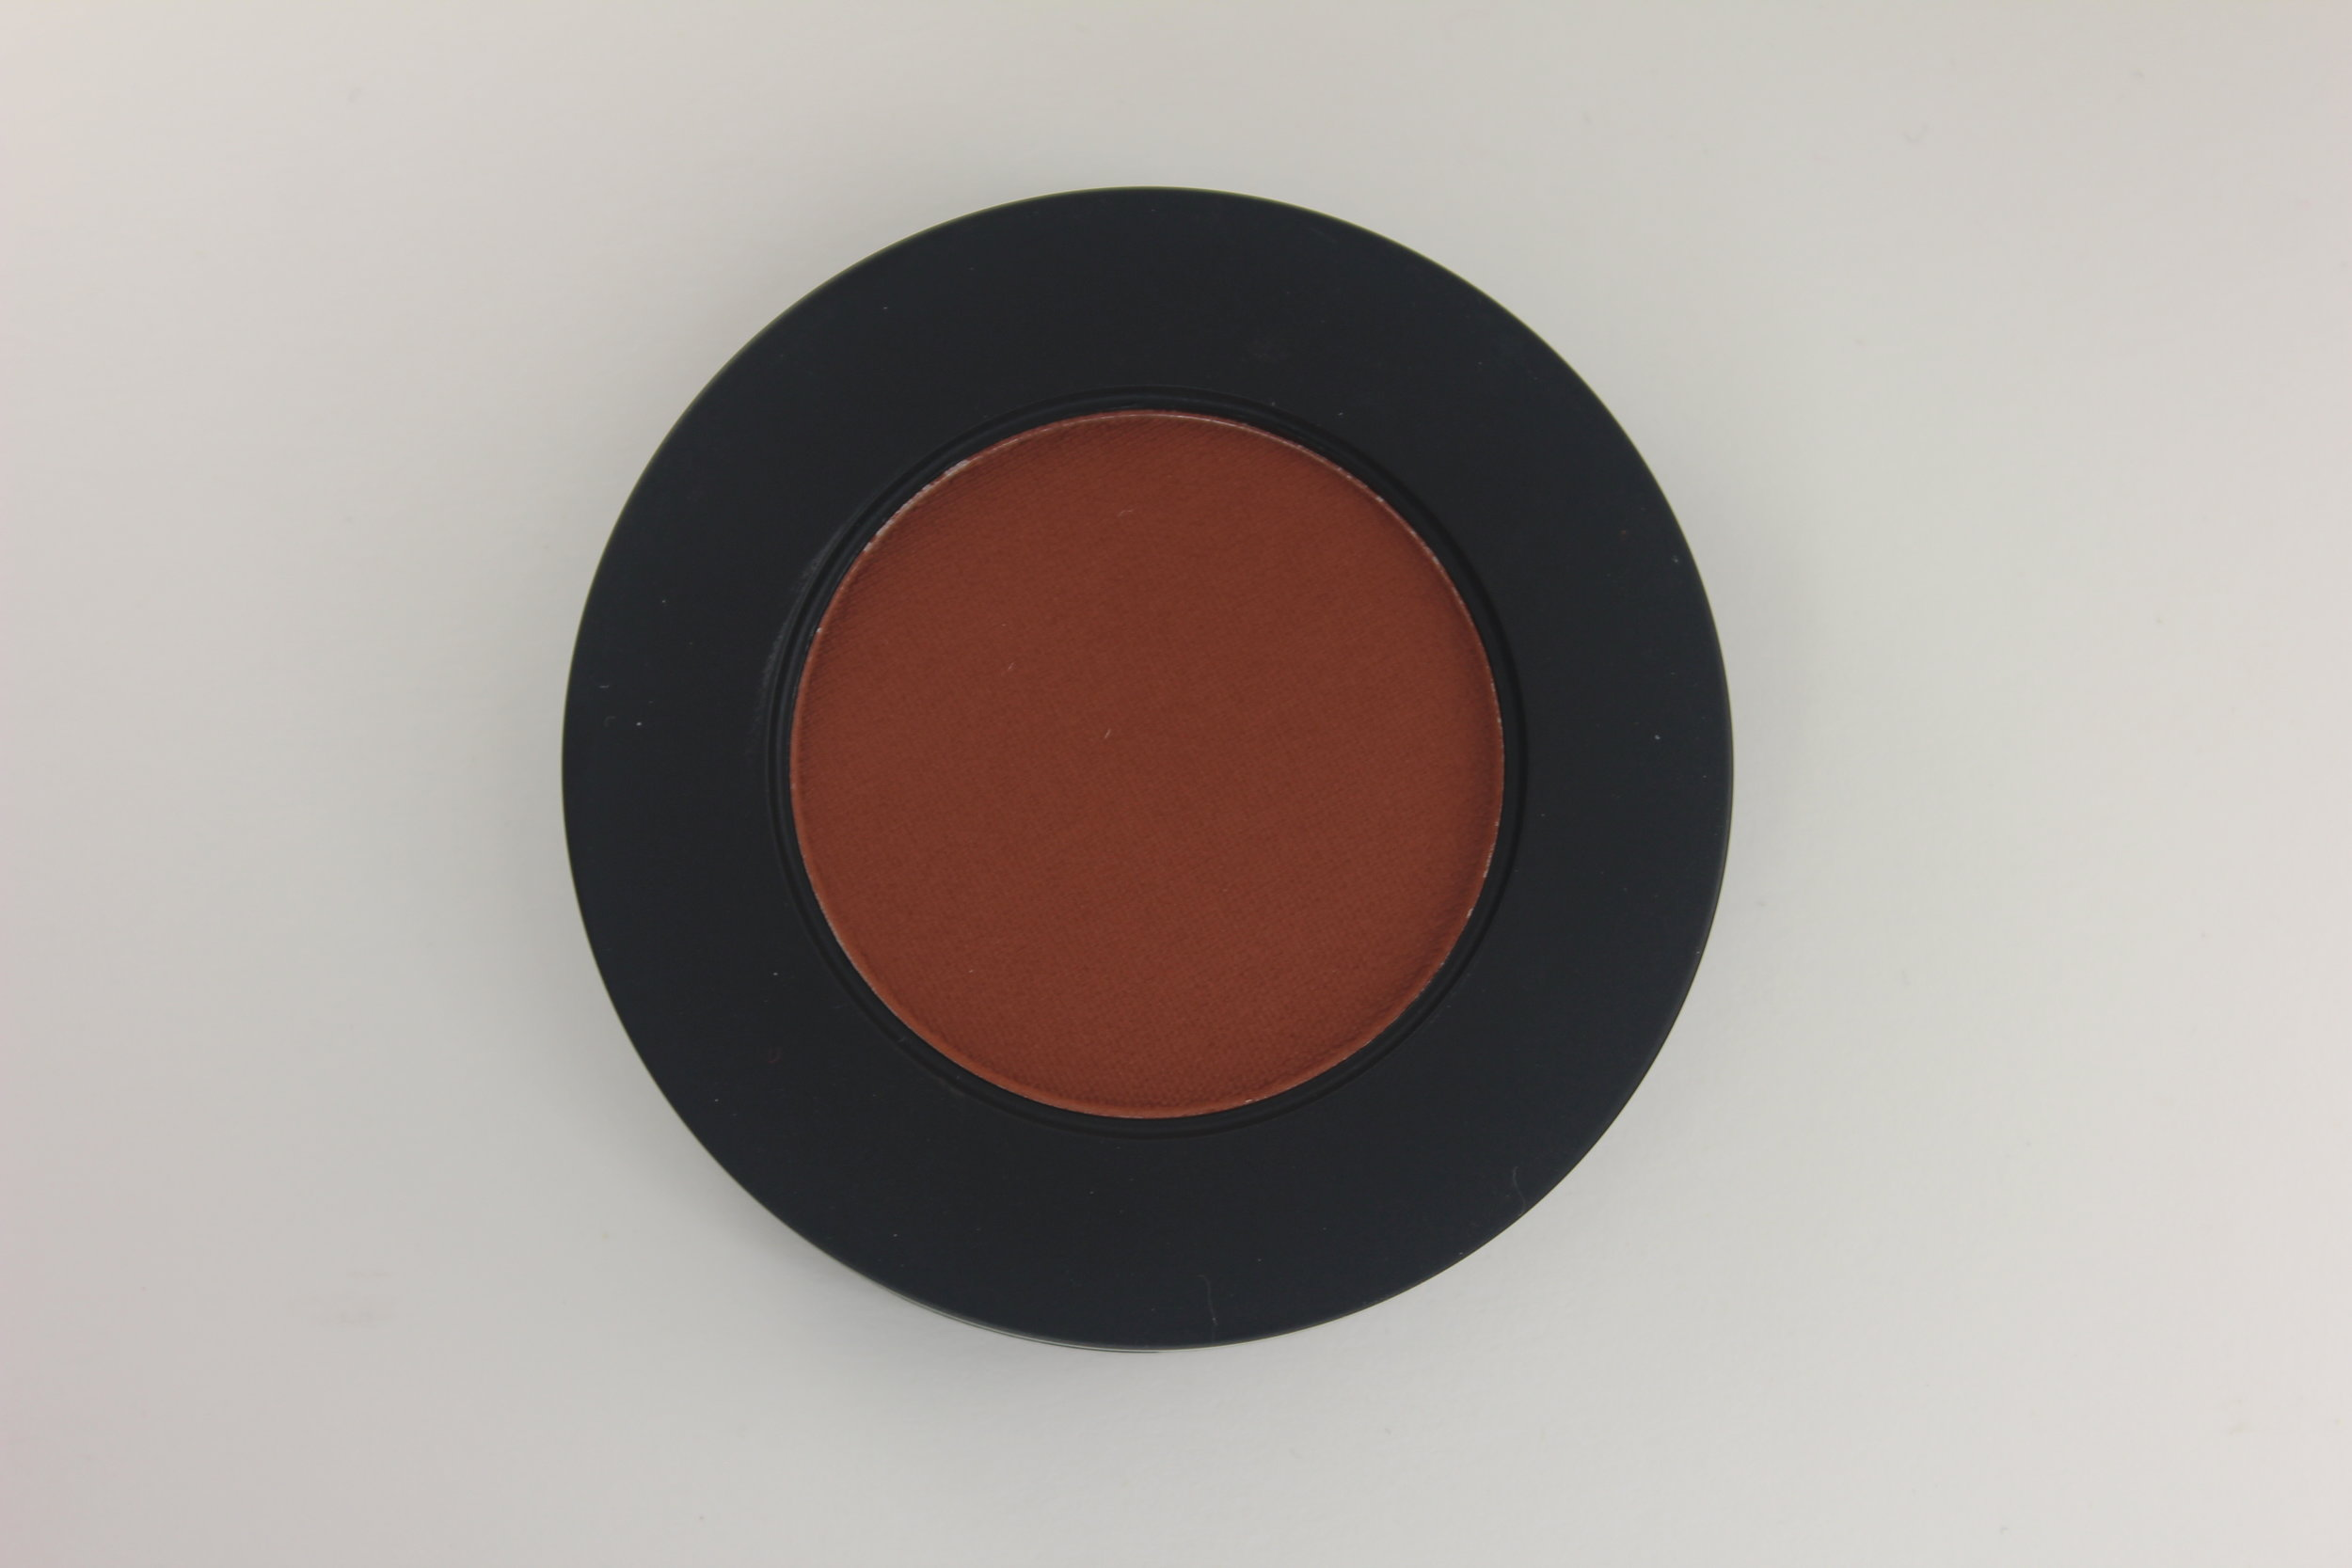 Melt Cosmetics Rust Stack - Rust eyeshadow